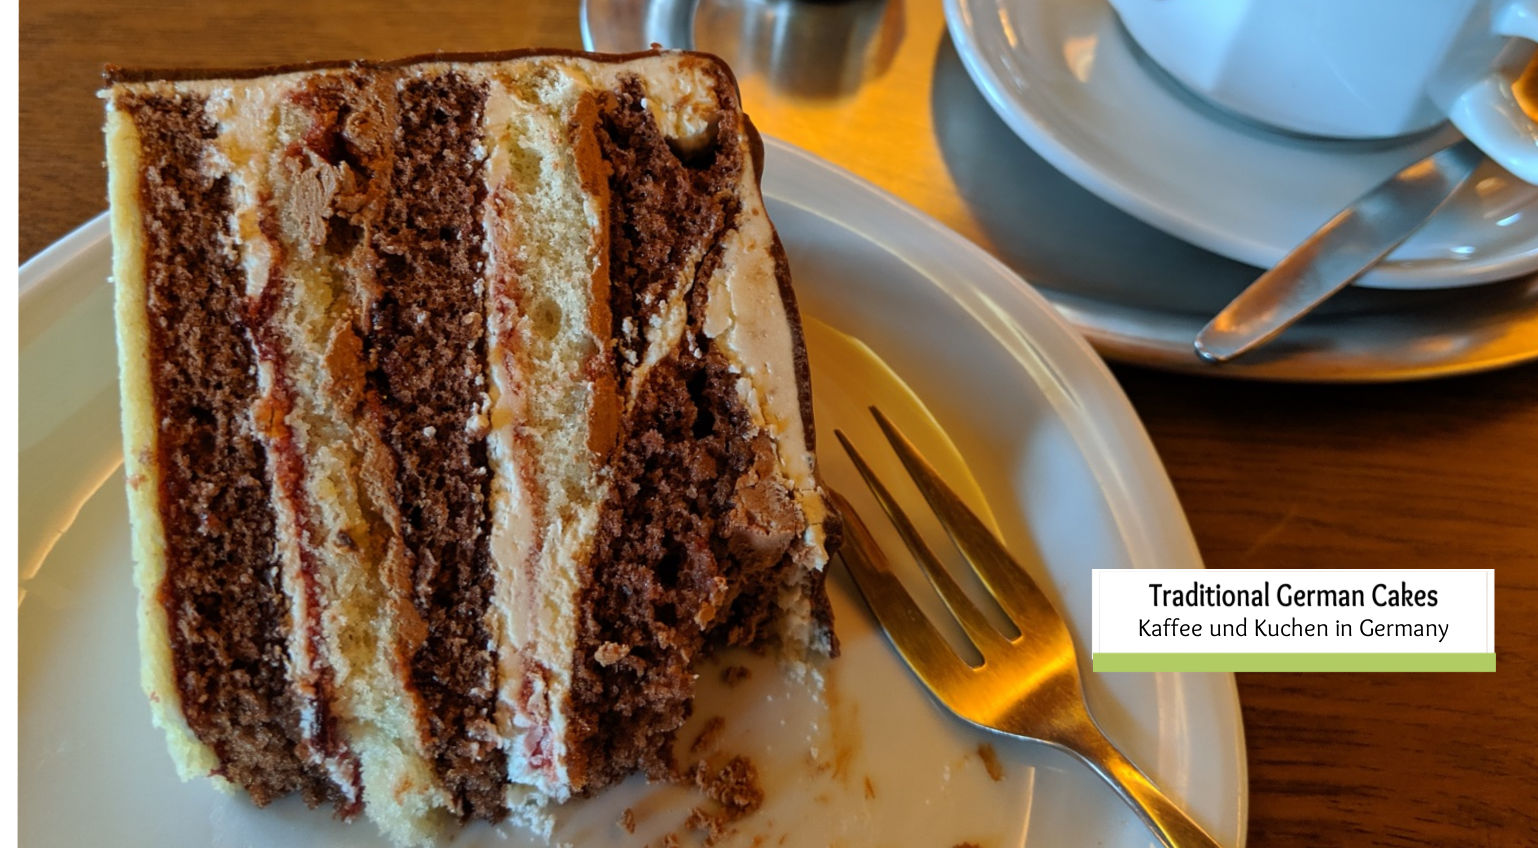 Kaffee and Kuchen Germany- Traditional German Cakes